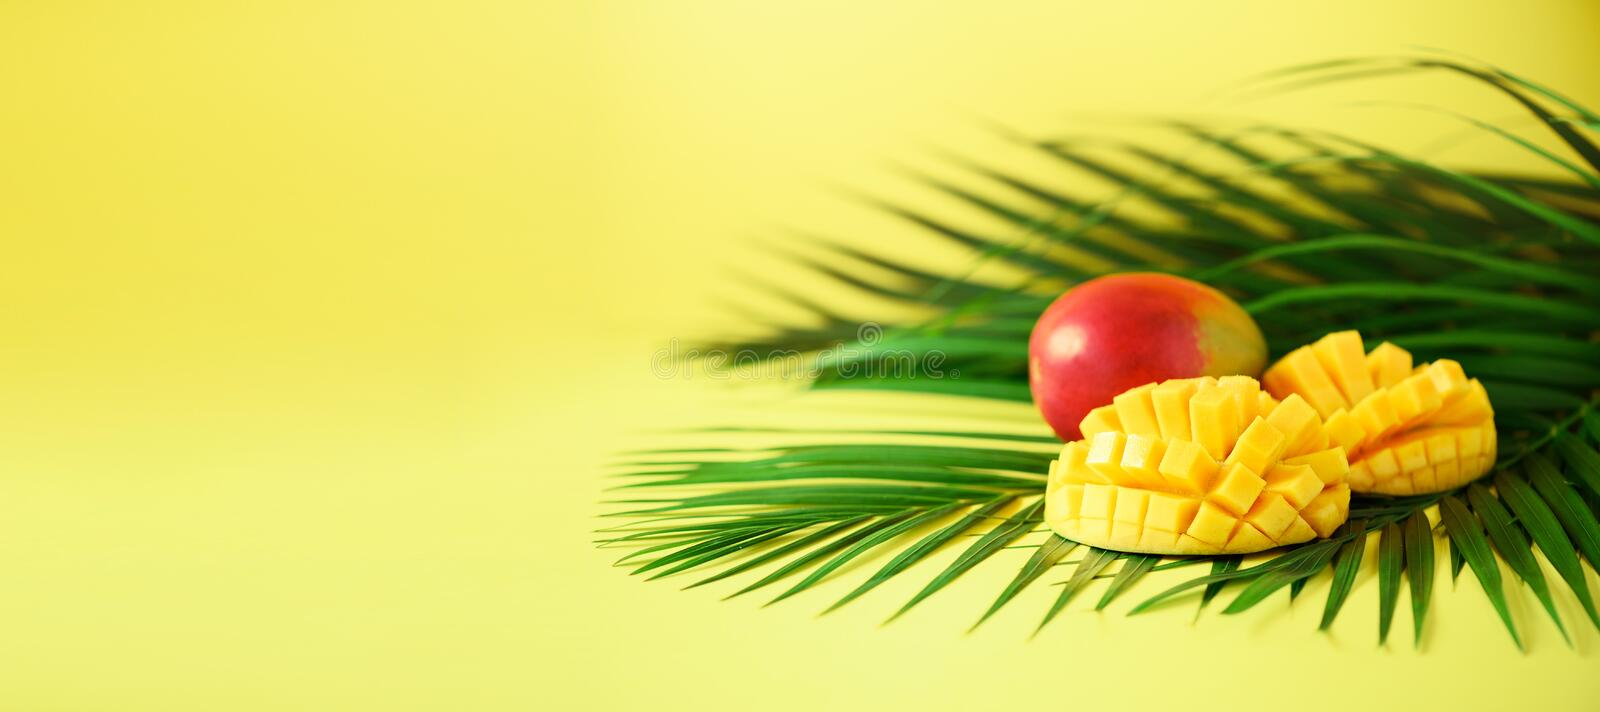 Exotic mango fruit over tropical green palm leaves on yellow background. Copy space. Pop art design, creative summer stock photos